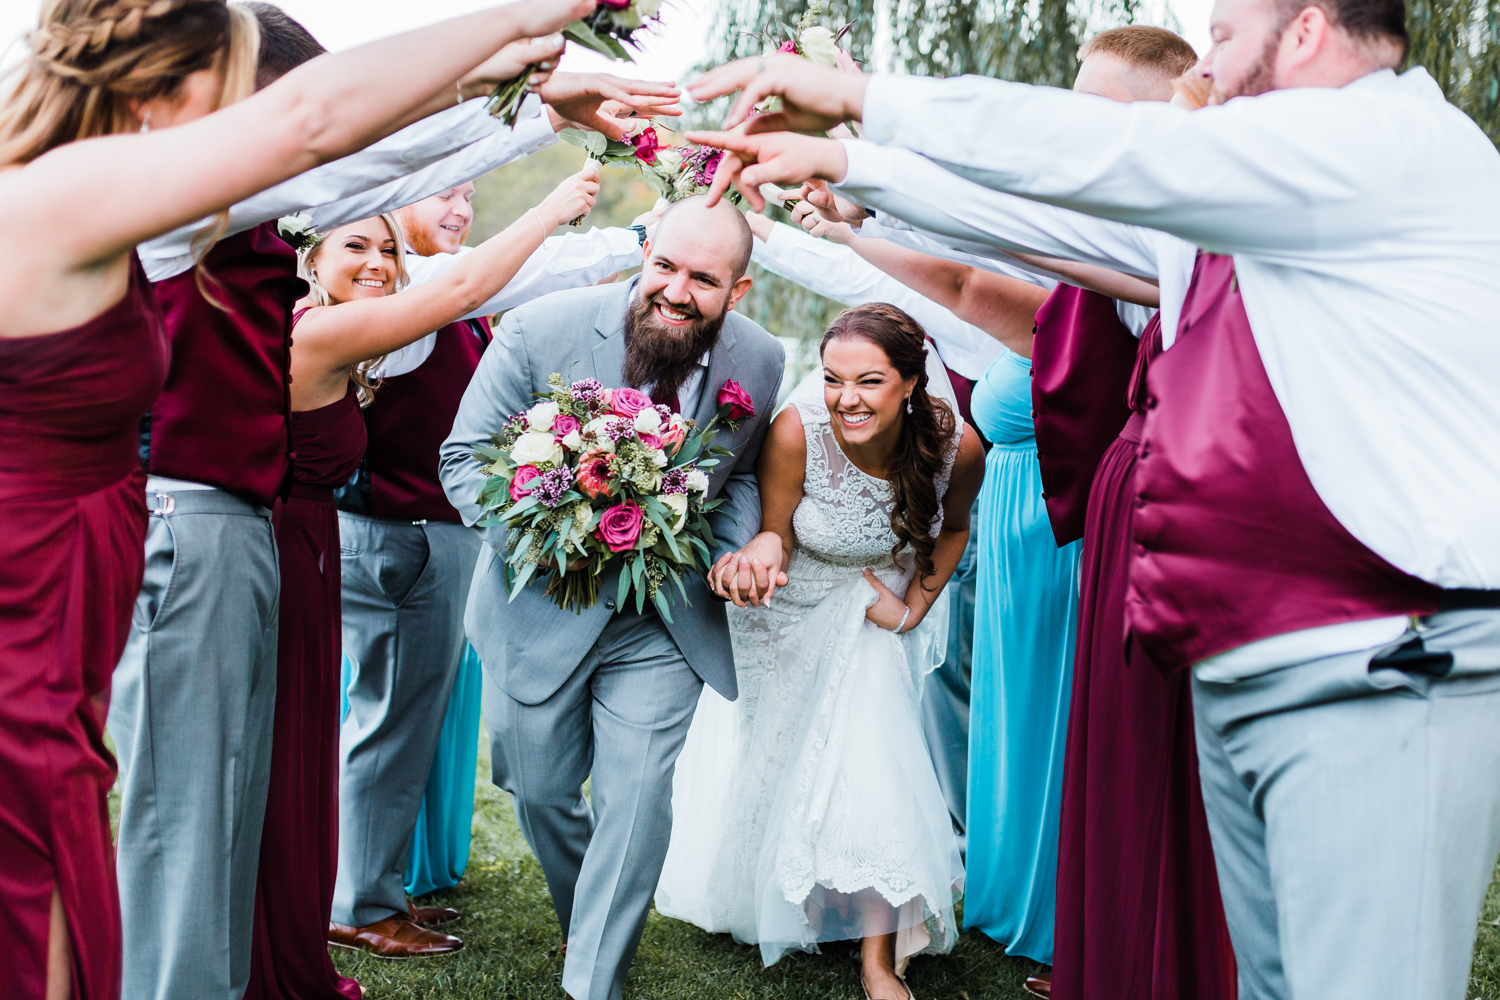 Fun ideas for shots with bridal party - awesome wedding photographers in Maryland